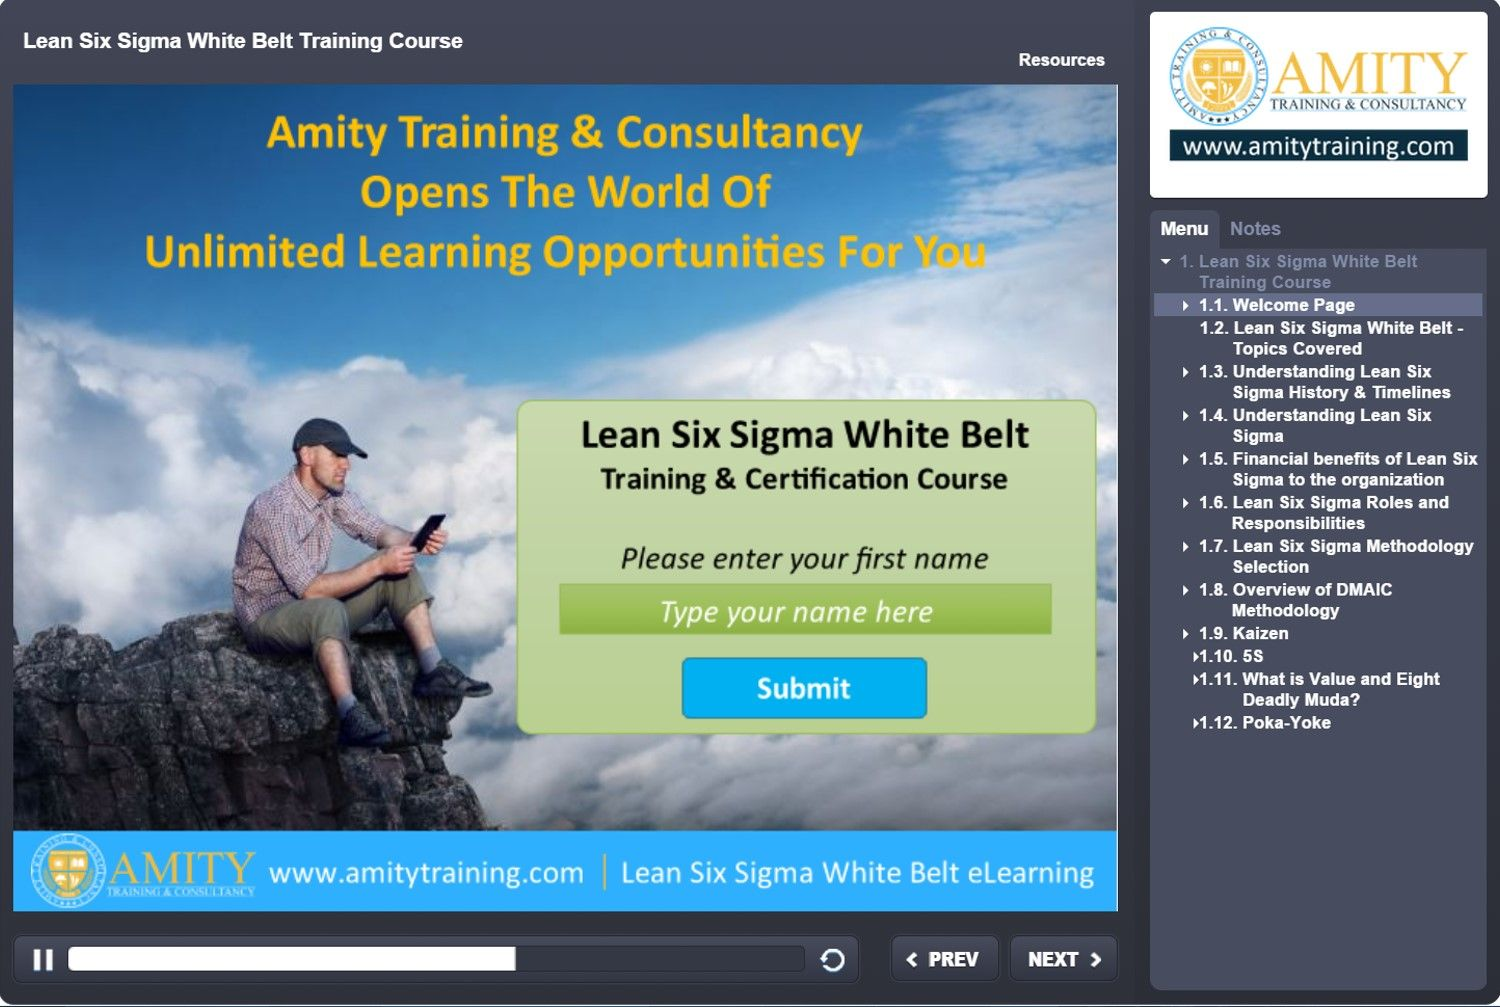 Free Lean Six Sigma White Belt Training Course At Www